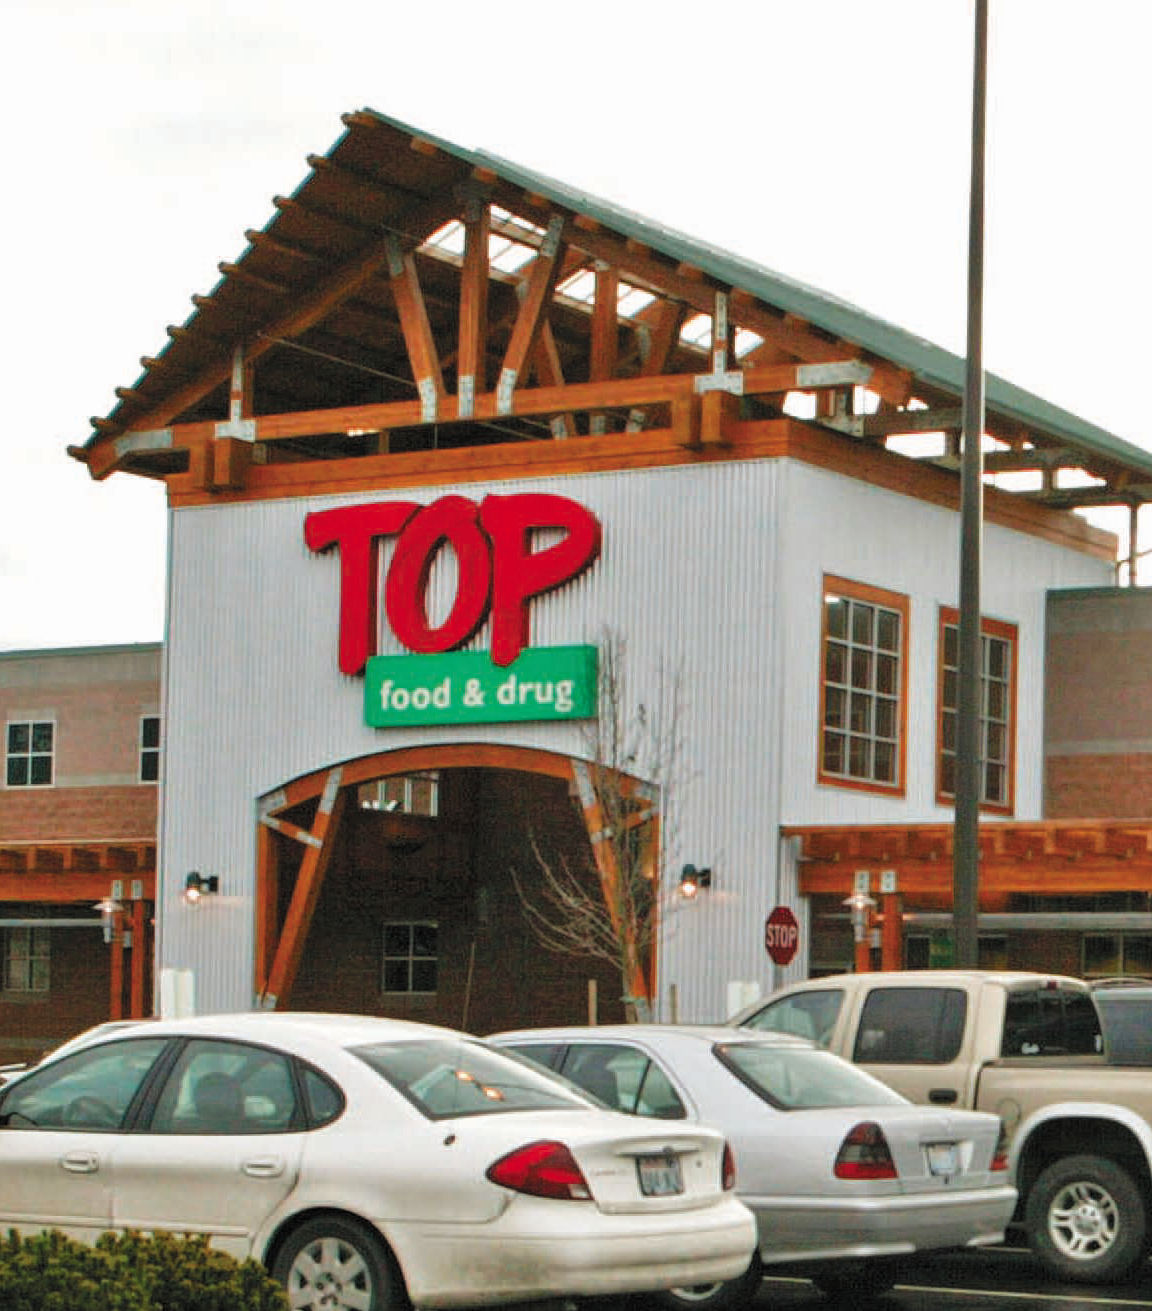 In , Tops Friendly Markets fully remodeled a store in Perinton, and rebranded it Martin's Super Food Store in an effort to revitalize the marketplace. Martin's Food Markets is a brand owned by Tops Friendly Markets' then-parent company, Ahold, via their subsidiary Giant-Carlisle.